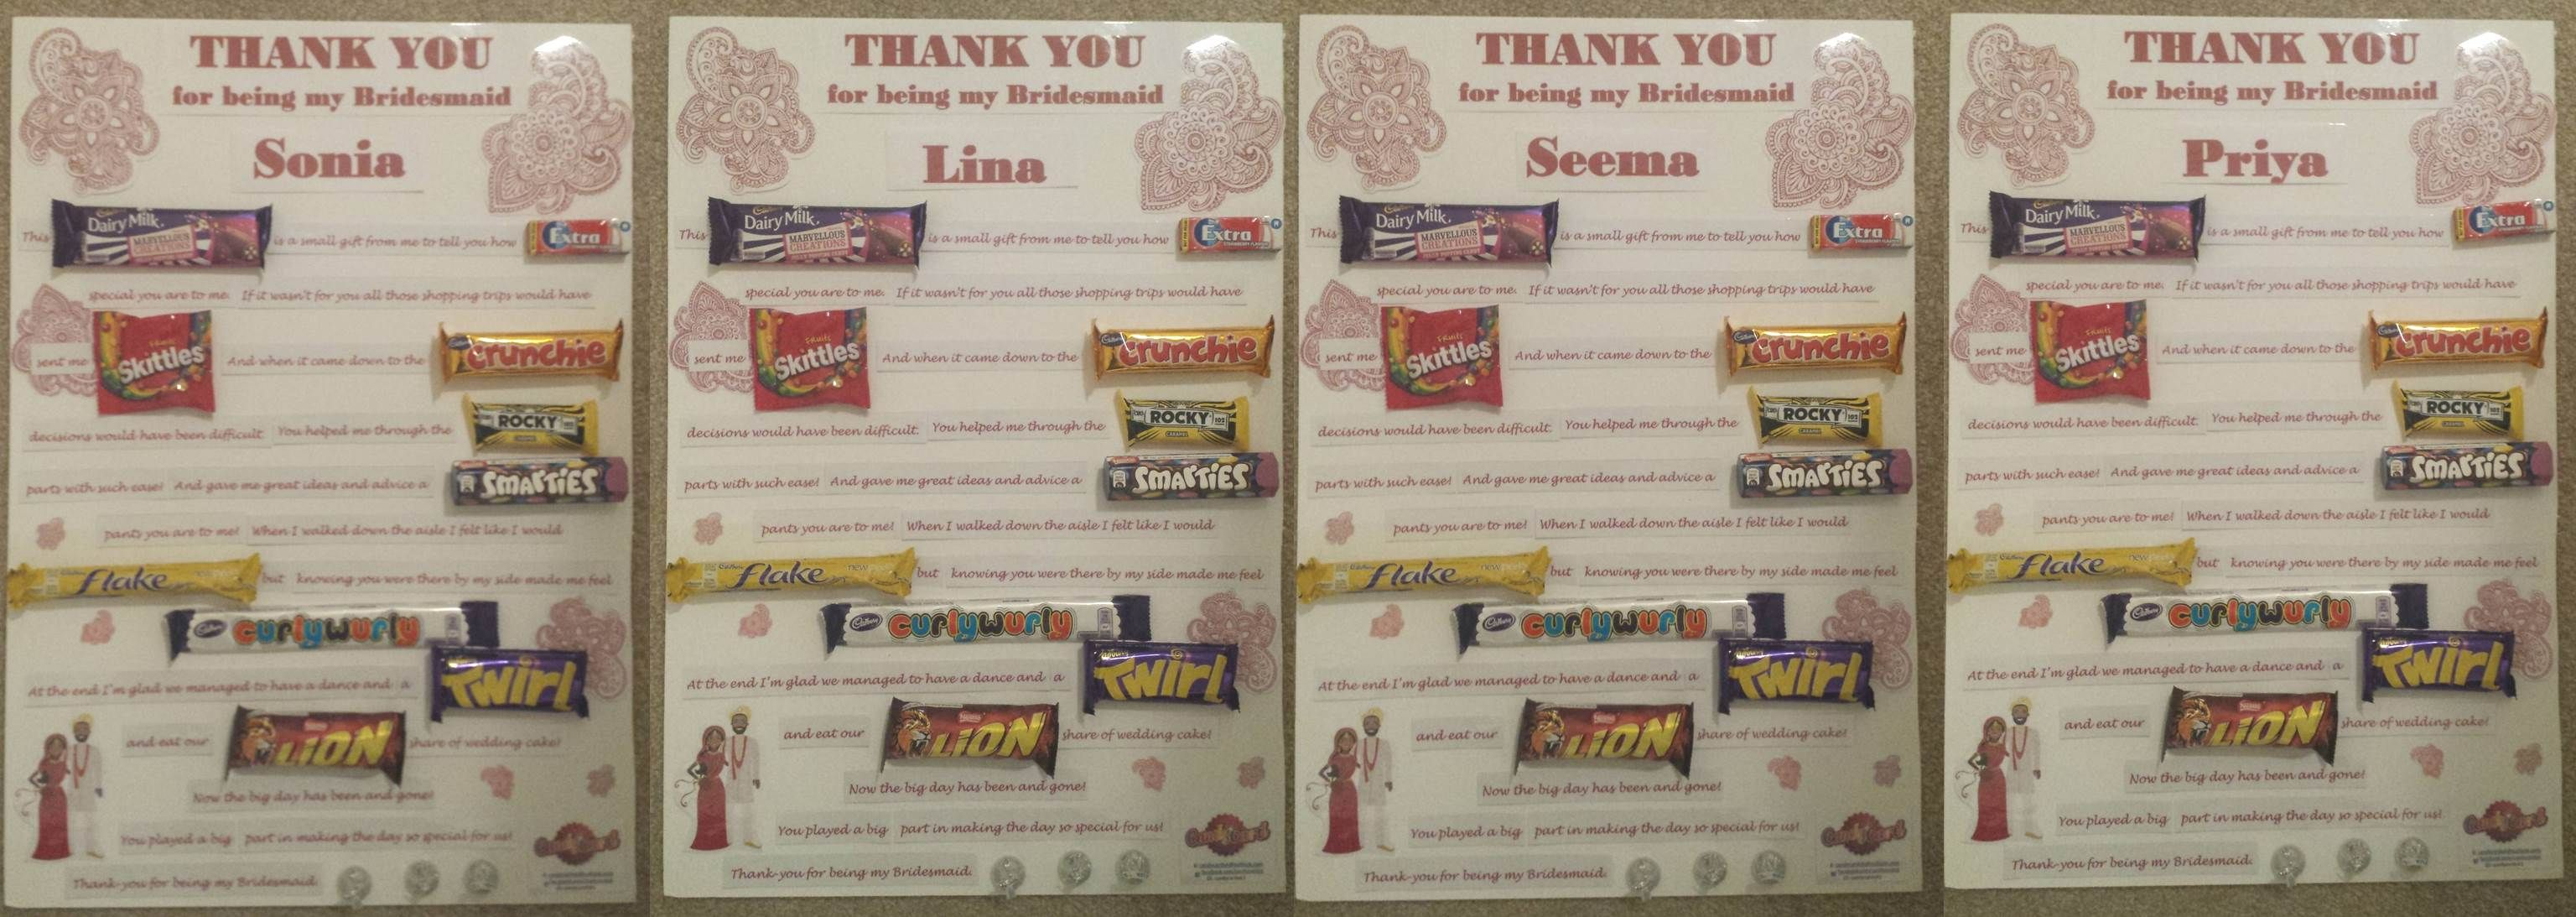 A New Innovative Way To Say Thank You To Bridesmaids Wedding